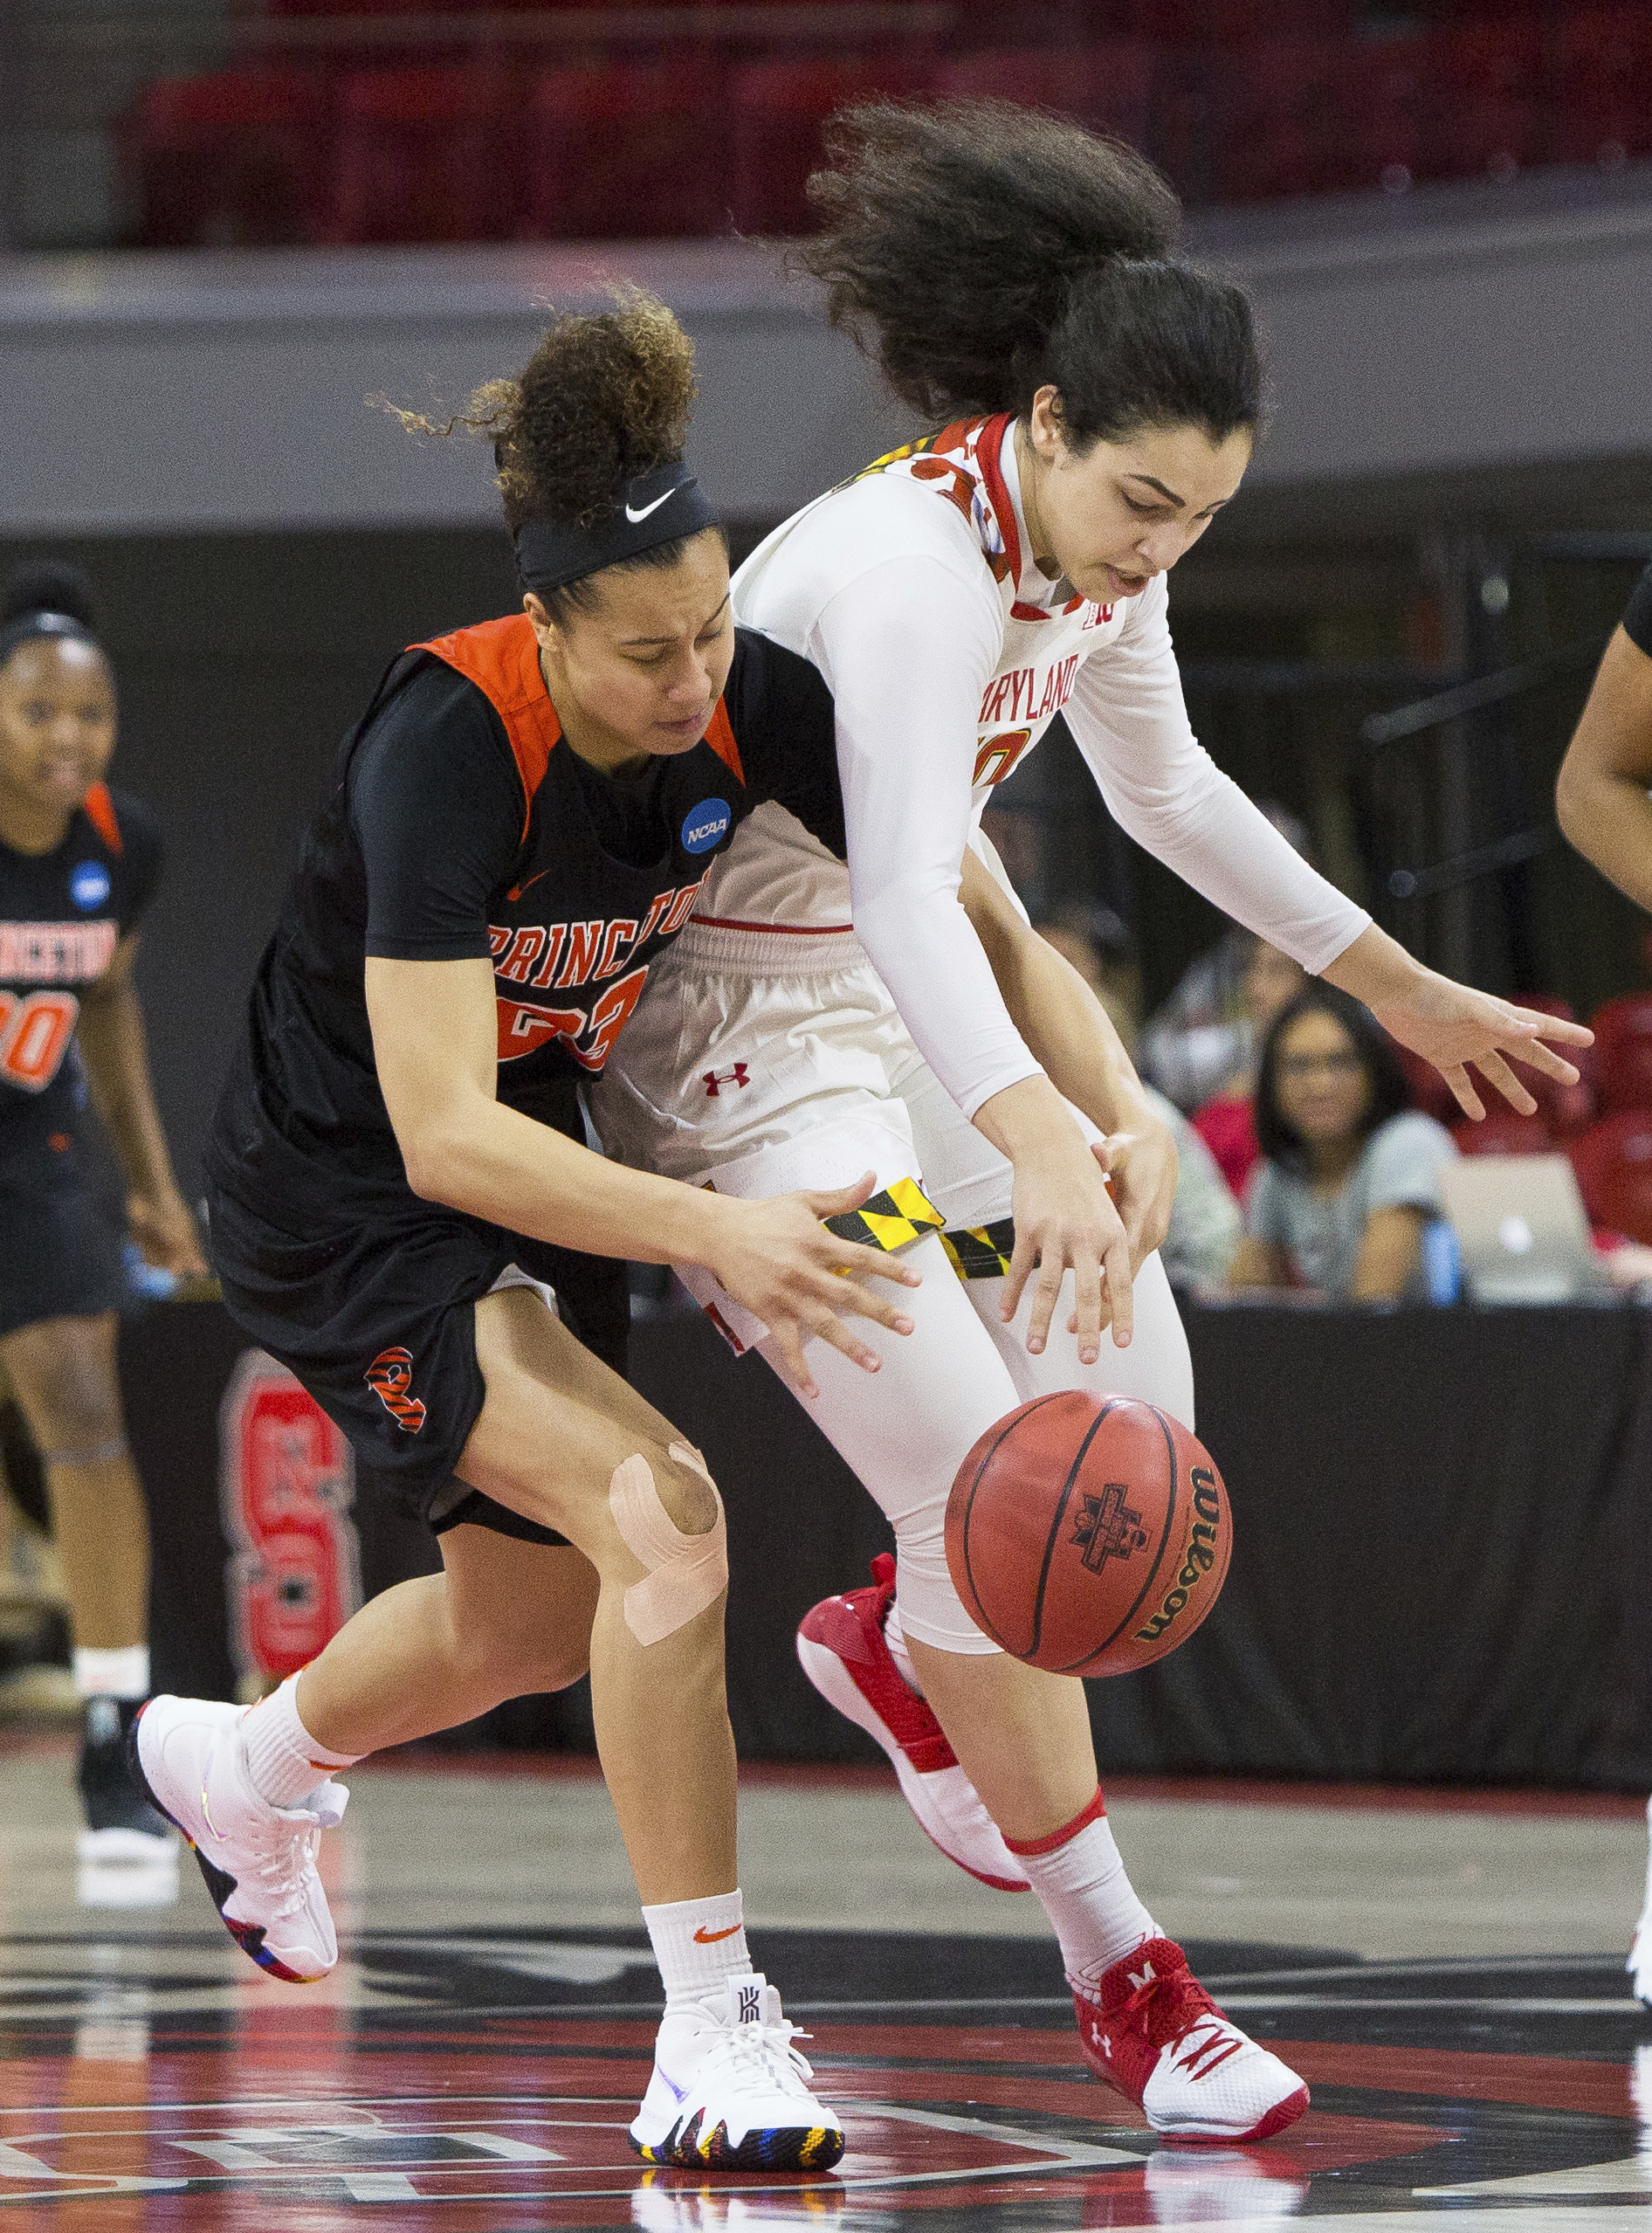 Maryland's Eleanna Christinaki, right, reaches for a steal against Princeton's Qalea Ismail, left, during the first half of a first-round game in the NCAA women's college basketball tournament in Raleigh, N.C., Friday, March 16, 2018. (AP Photo/Ben McKeown)